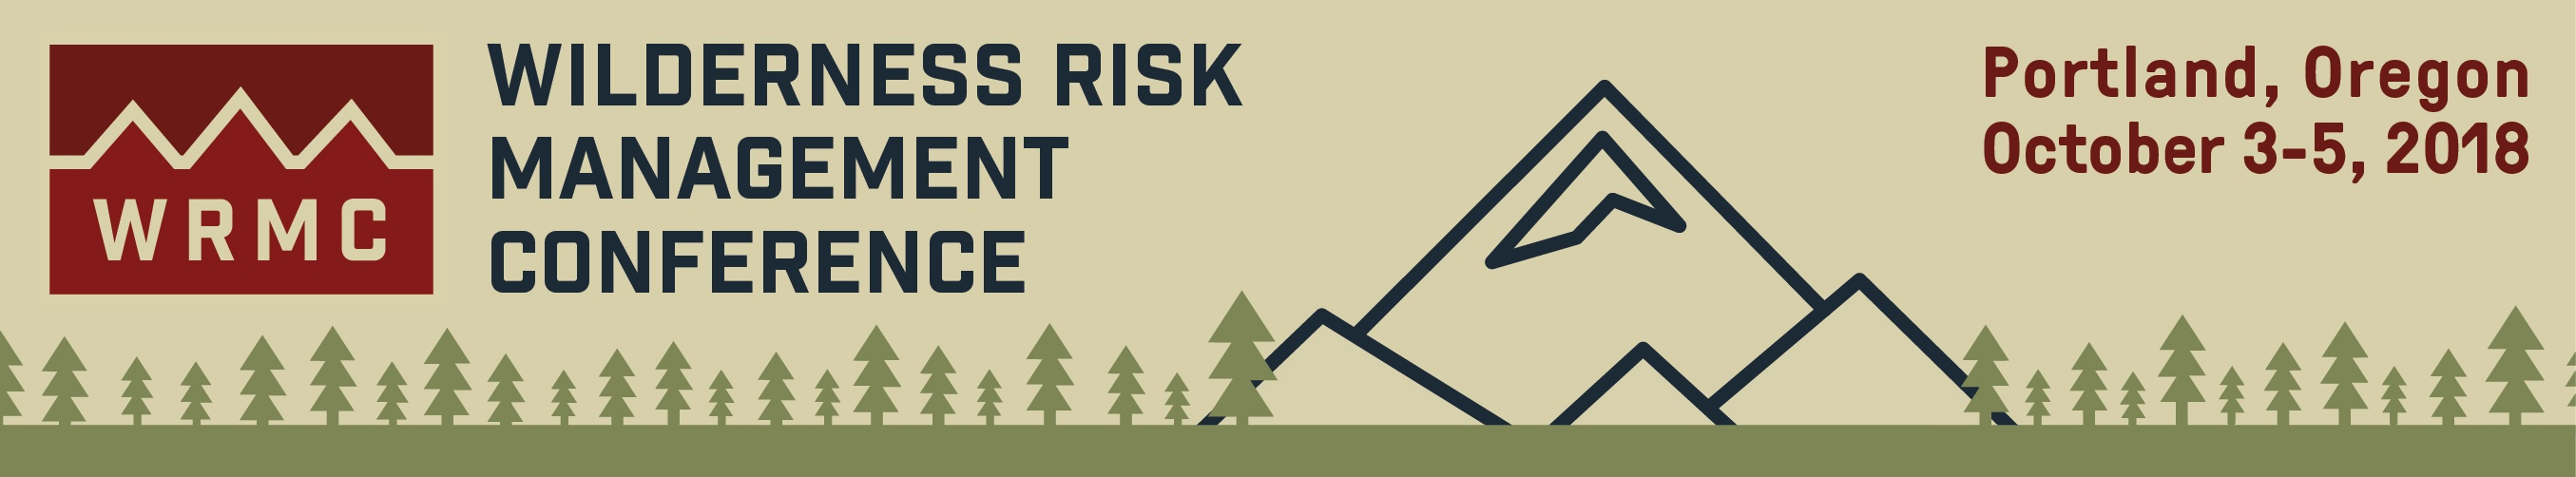 Wilderness Risk Management Conference 2018 Banner